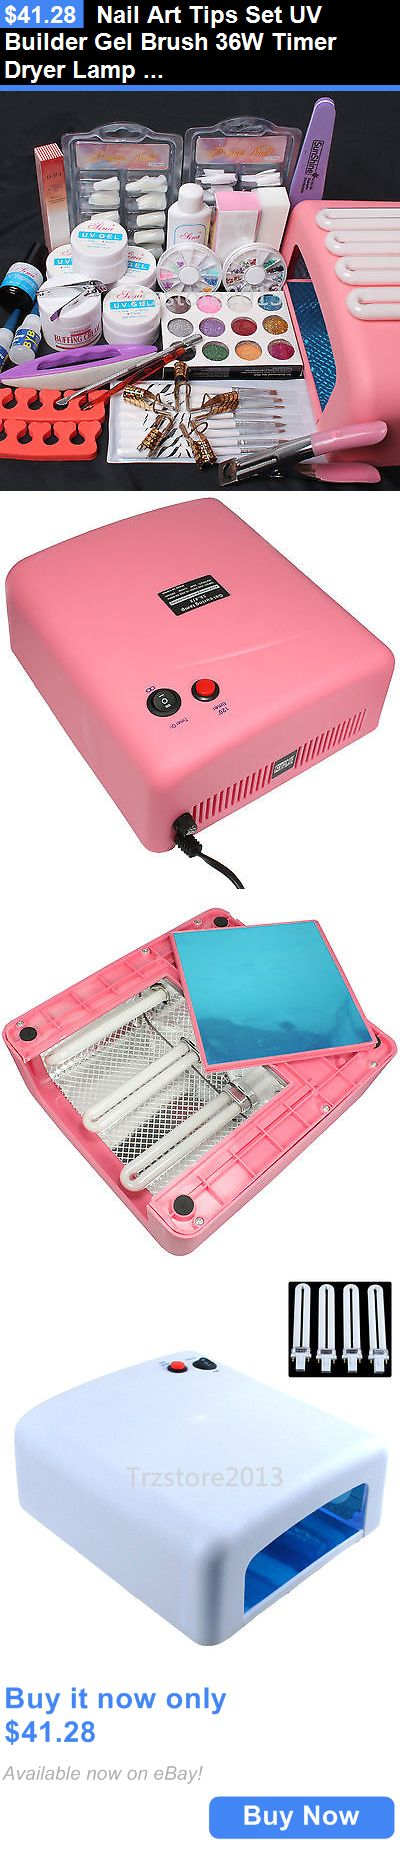 Nail Art Accessories: Nail Art Tips Set Uv Builder Gel Brush 36W Timer Dryer Lamp Decoration Tools Kit BUY IT NOW ONLY: $41.28